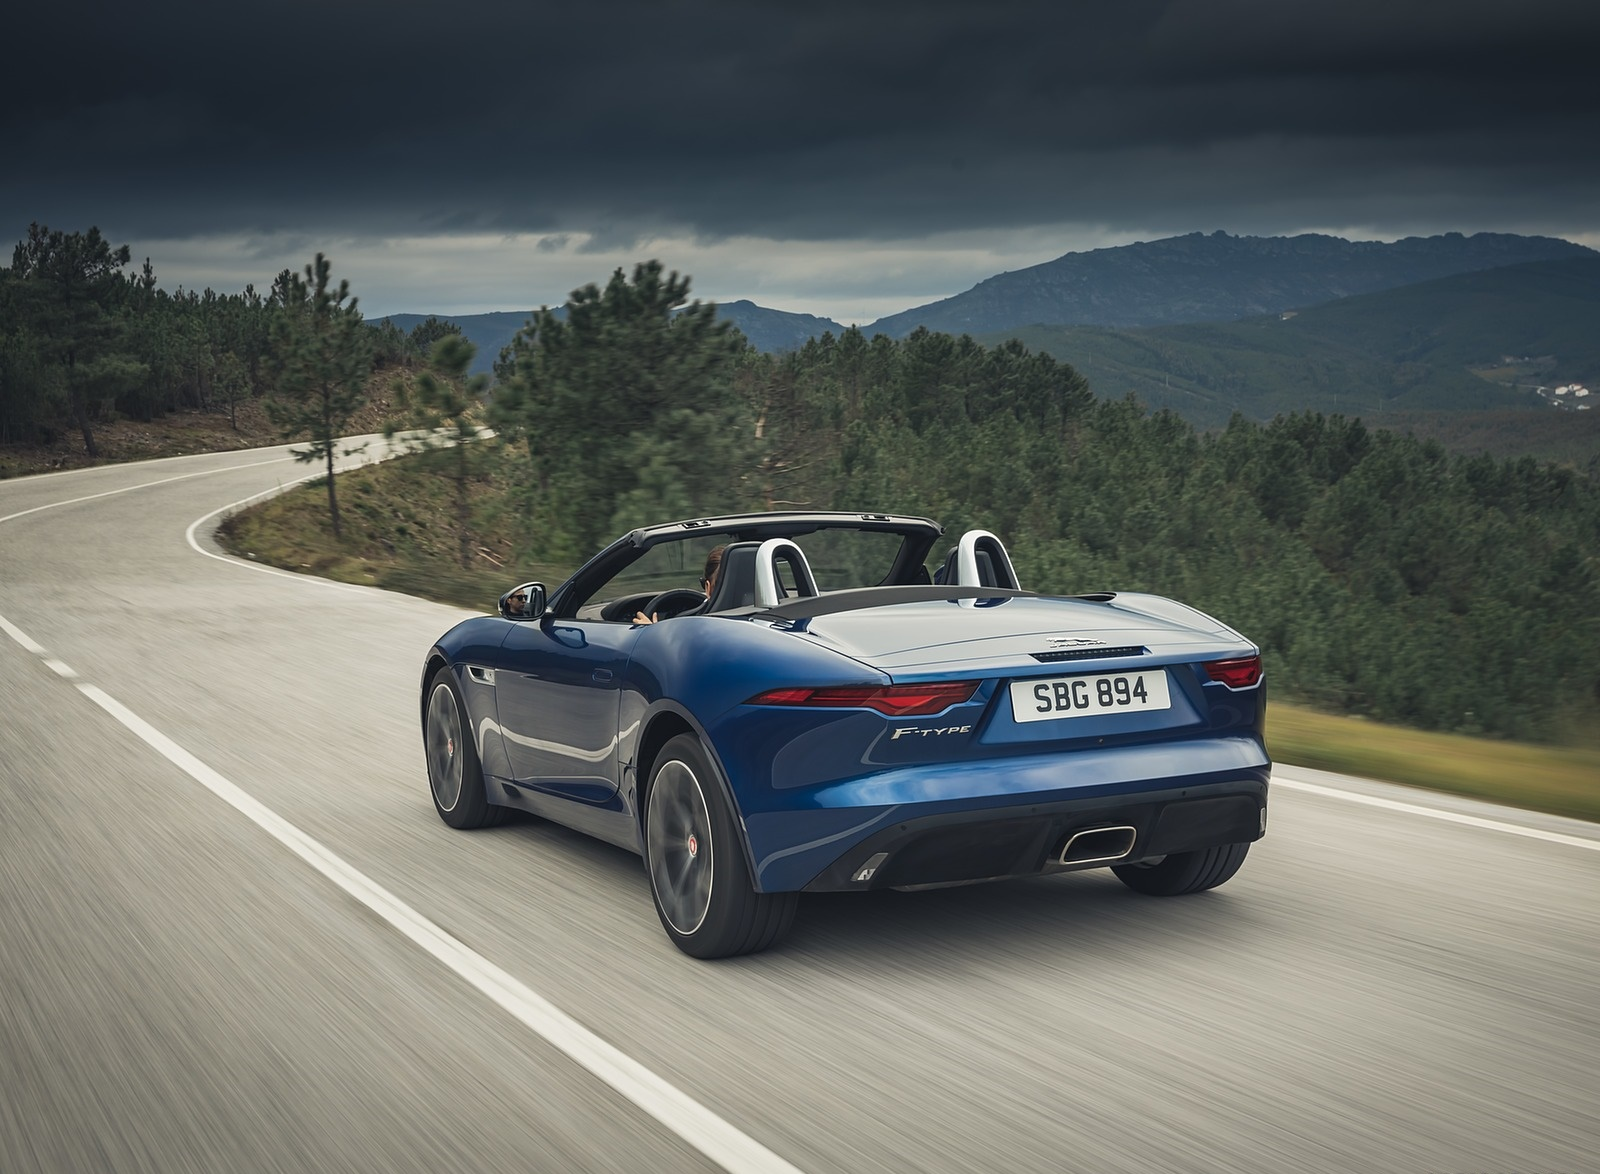 2021 Jaguar F-TYPE P300 Convertible RWD (Color: Bluefire) Rear Three-Quarter Wallpapers (8)